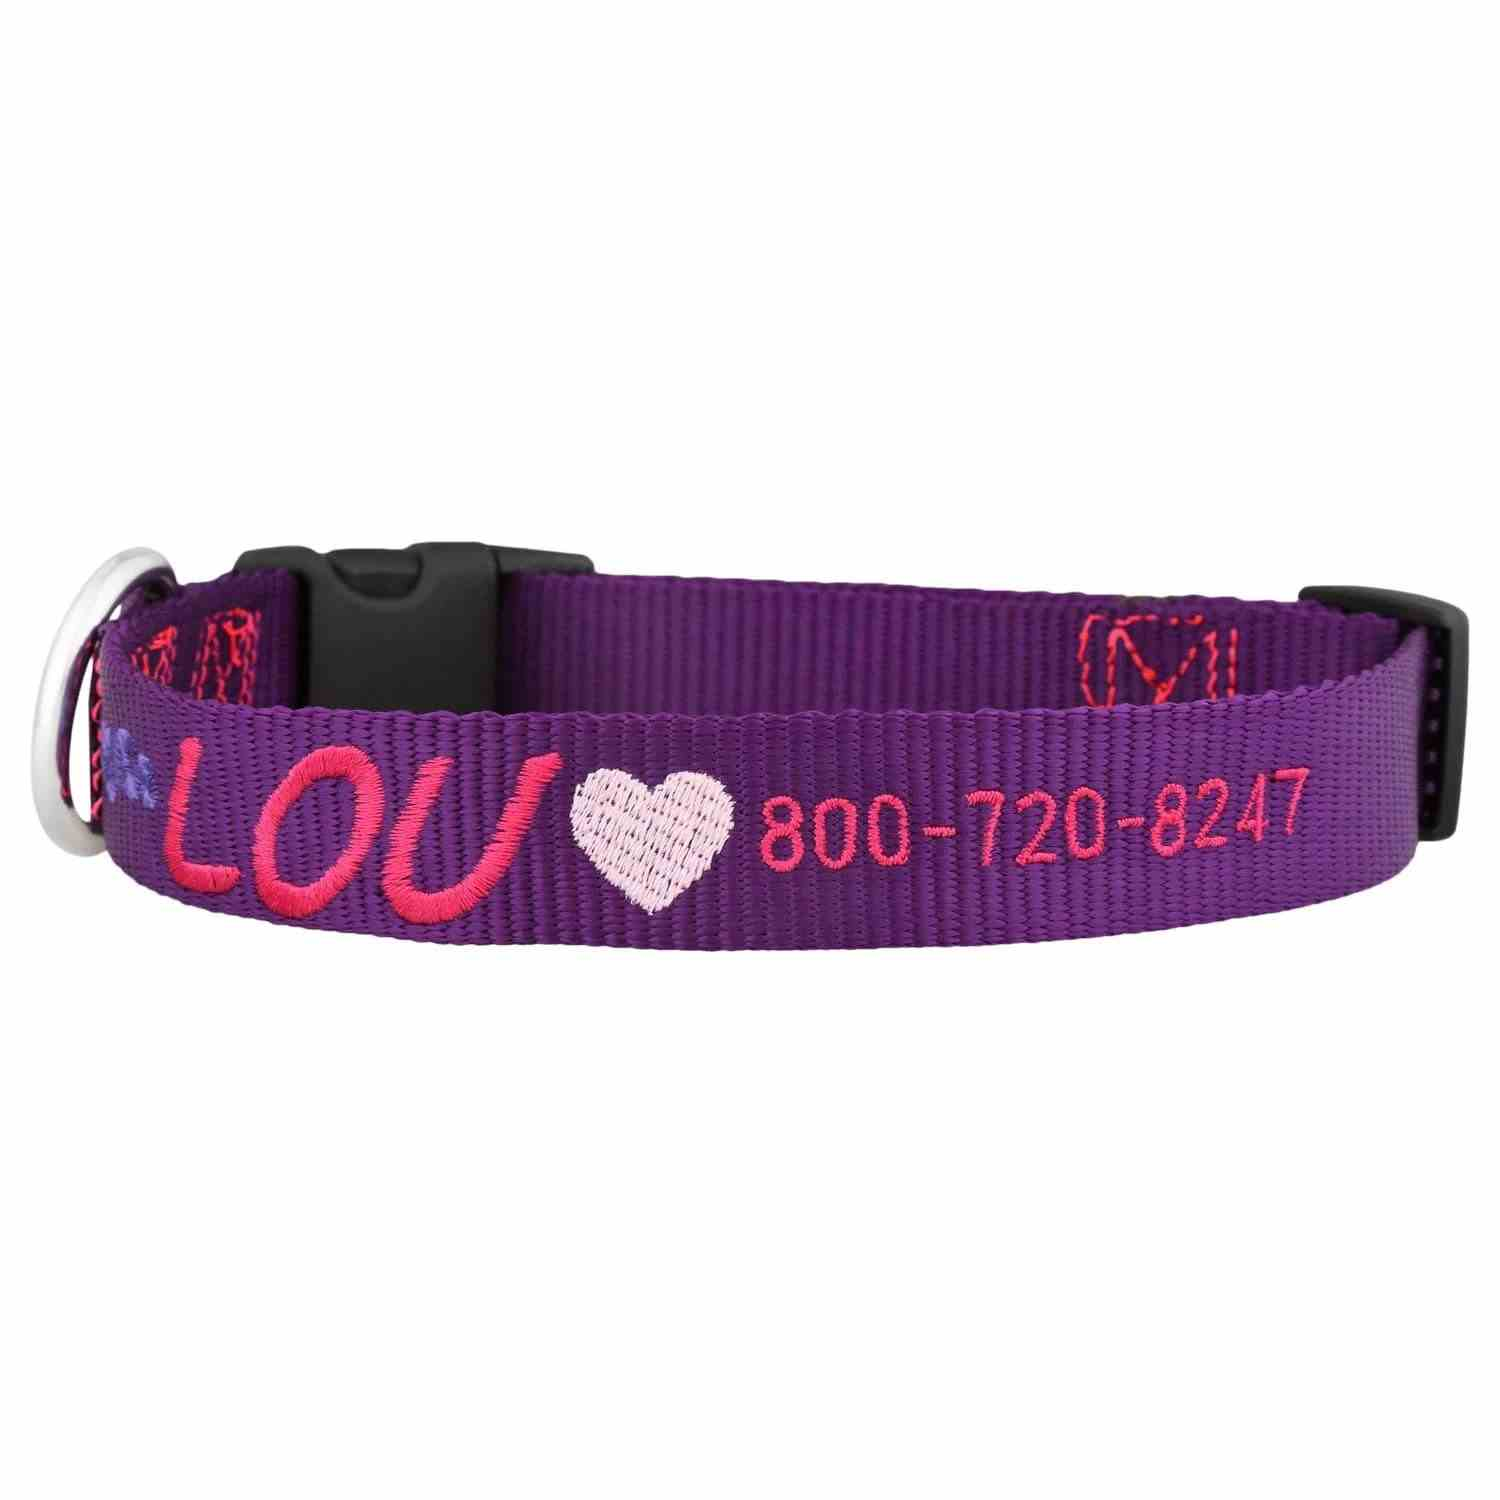 Embroidered Valentine's Day Dog Collars Purple Collar with Pink Heart